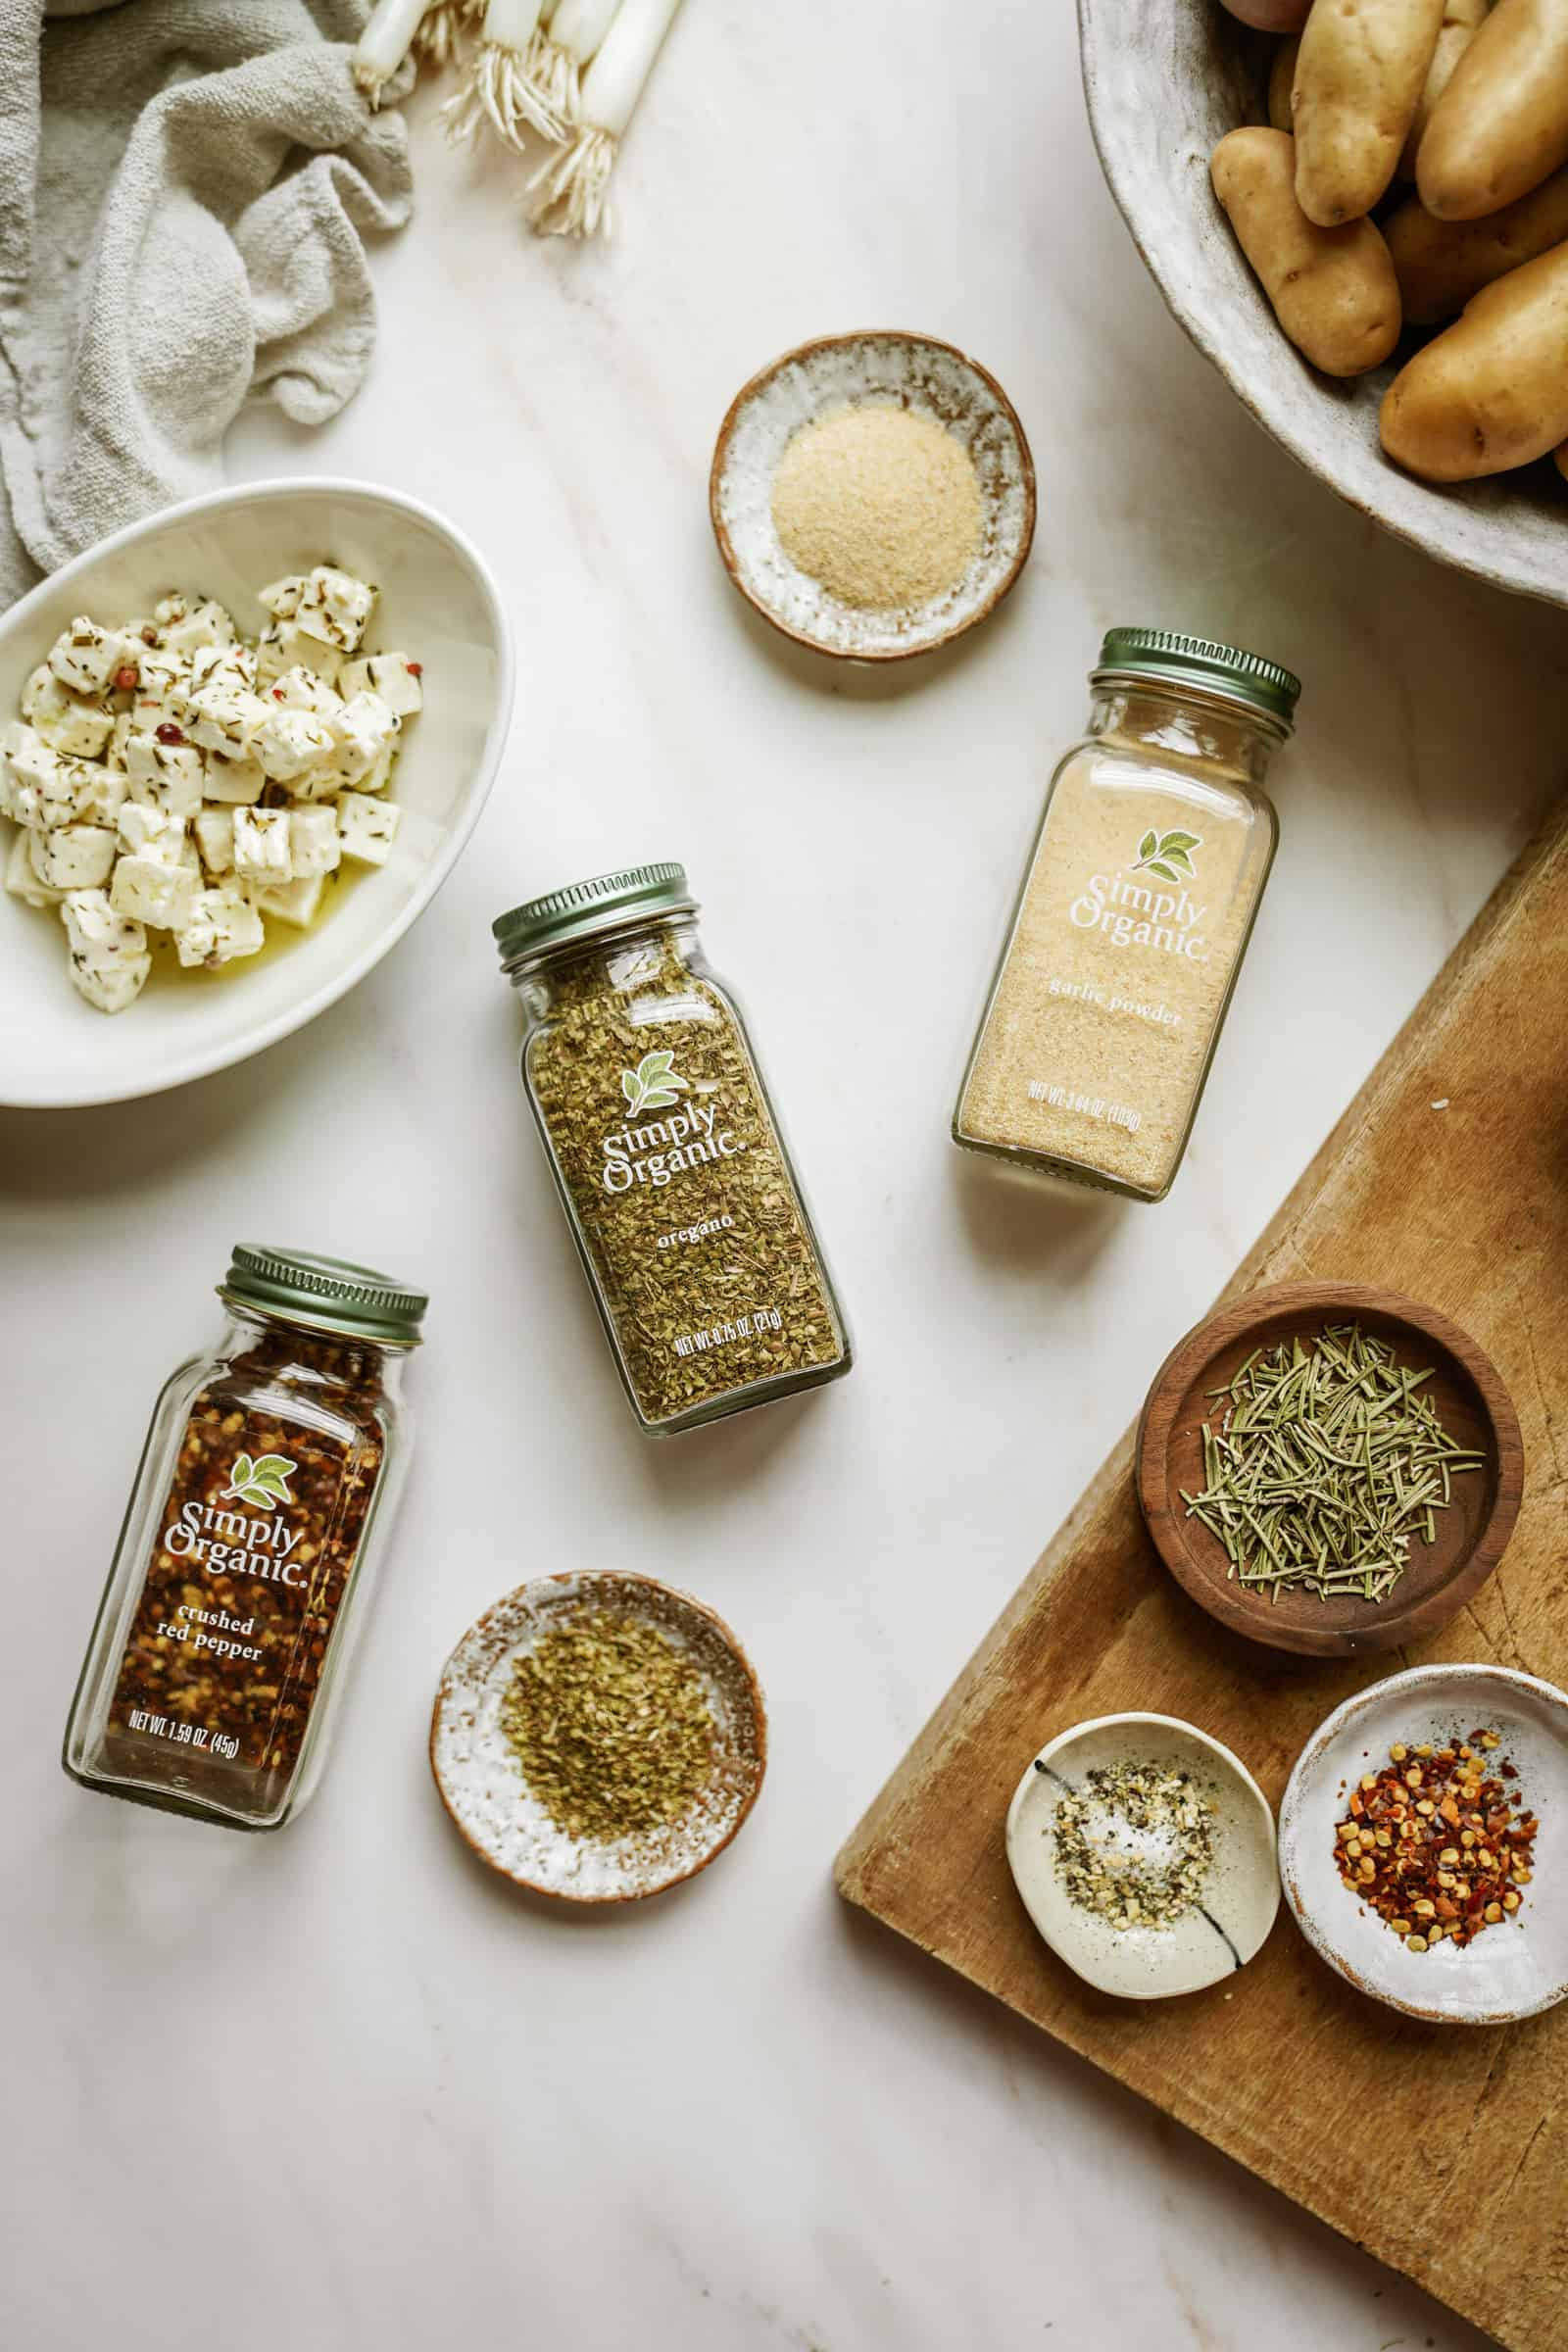 Simply Organic spices on a table surrounded by ingredients